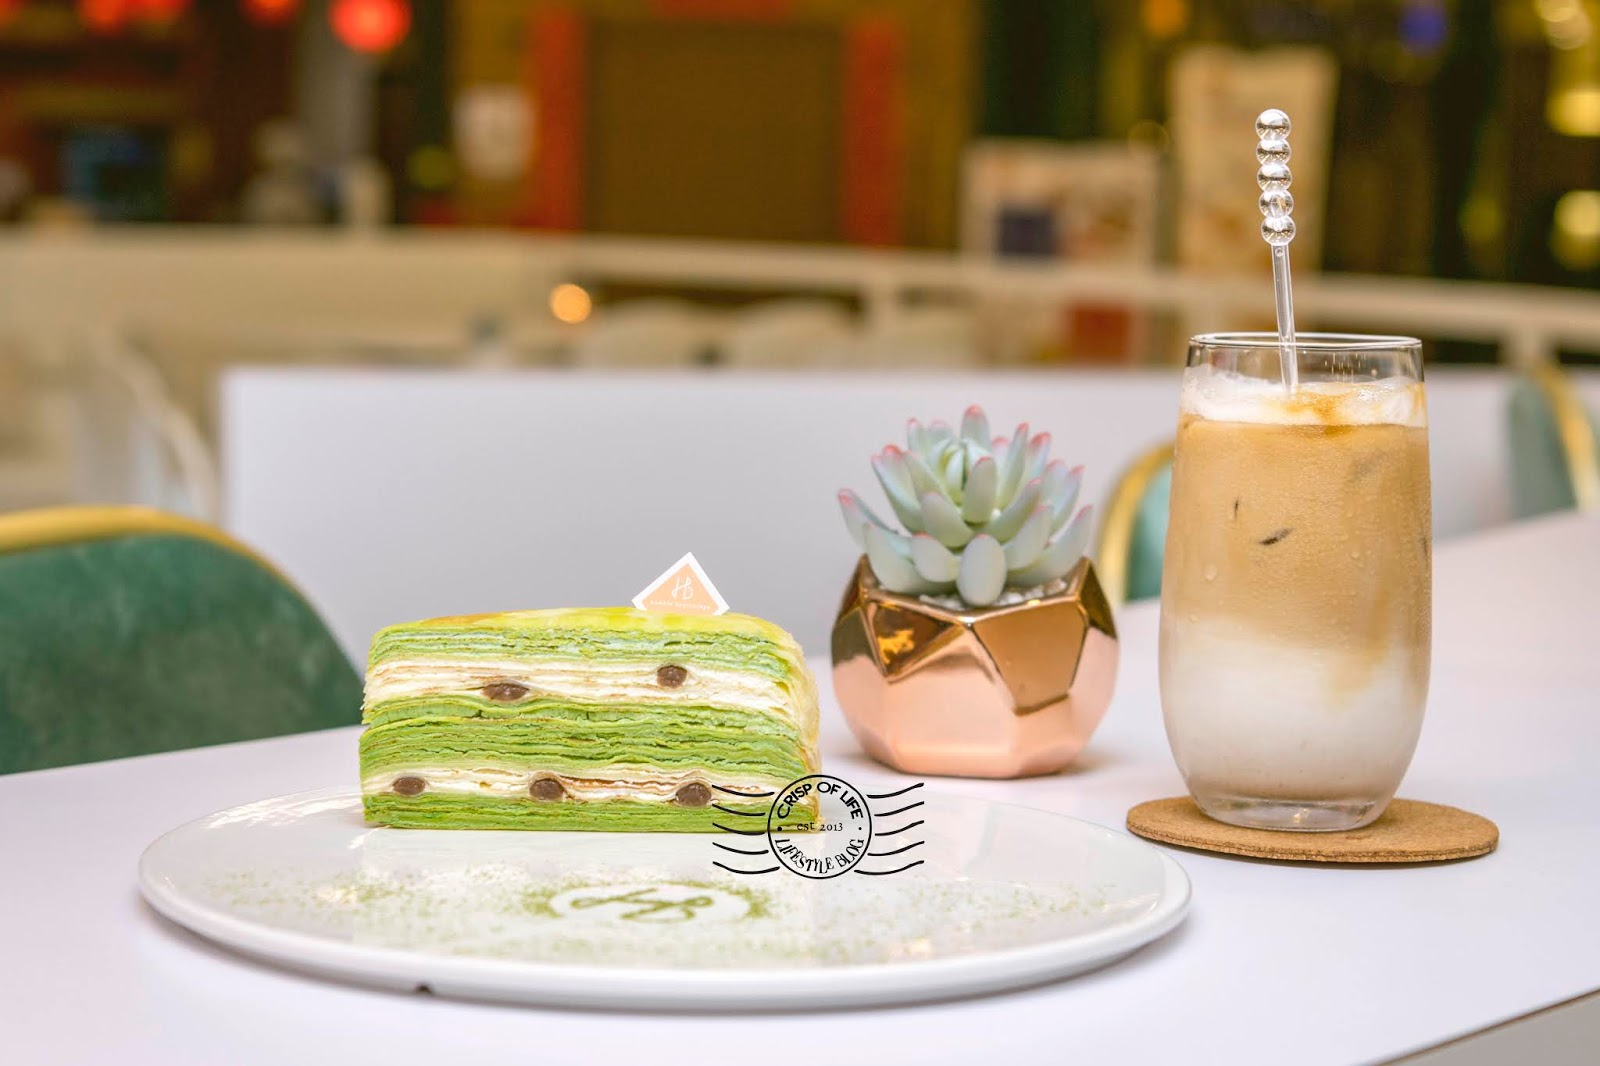 HB Dessert Humble Beginnings Mille Crepe @ Queensbay Mall, Penang